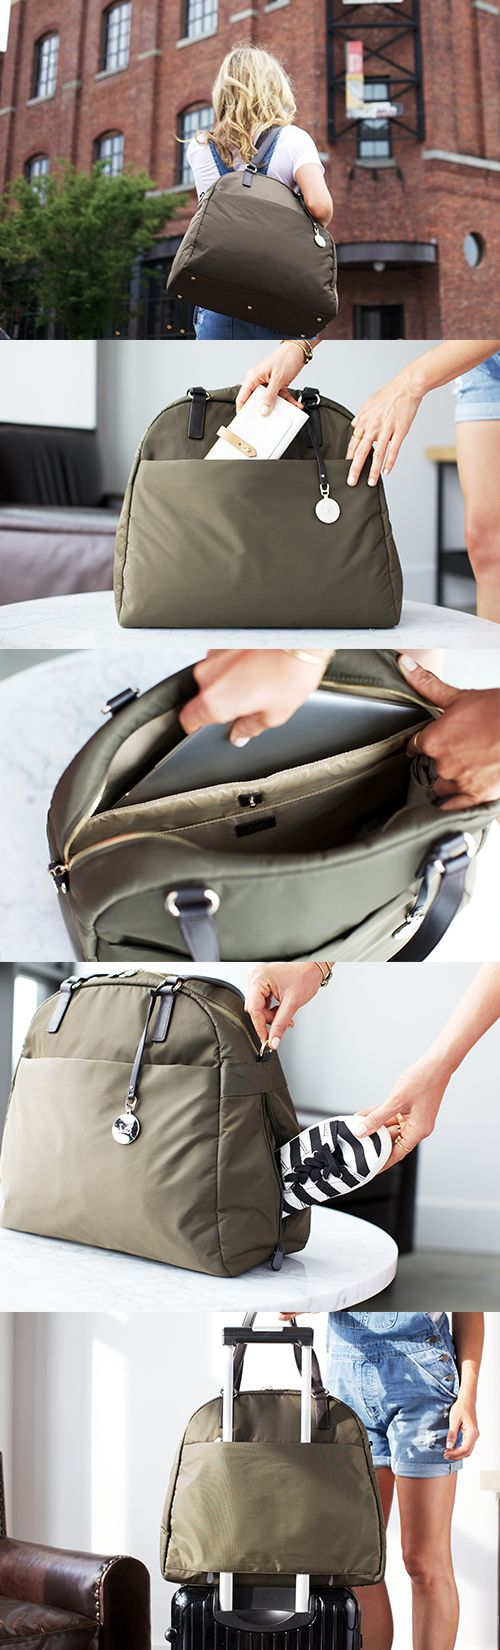 """""""The OG"""" - lightweight travel bag, tech friendly laptop tote, and stylish gym bag. Designed by Lo & Sons - loandsons.com. #loandsons"""